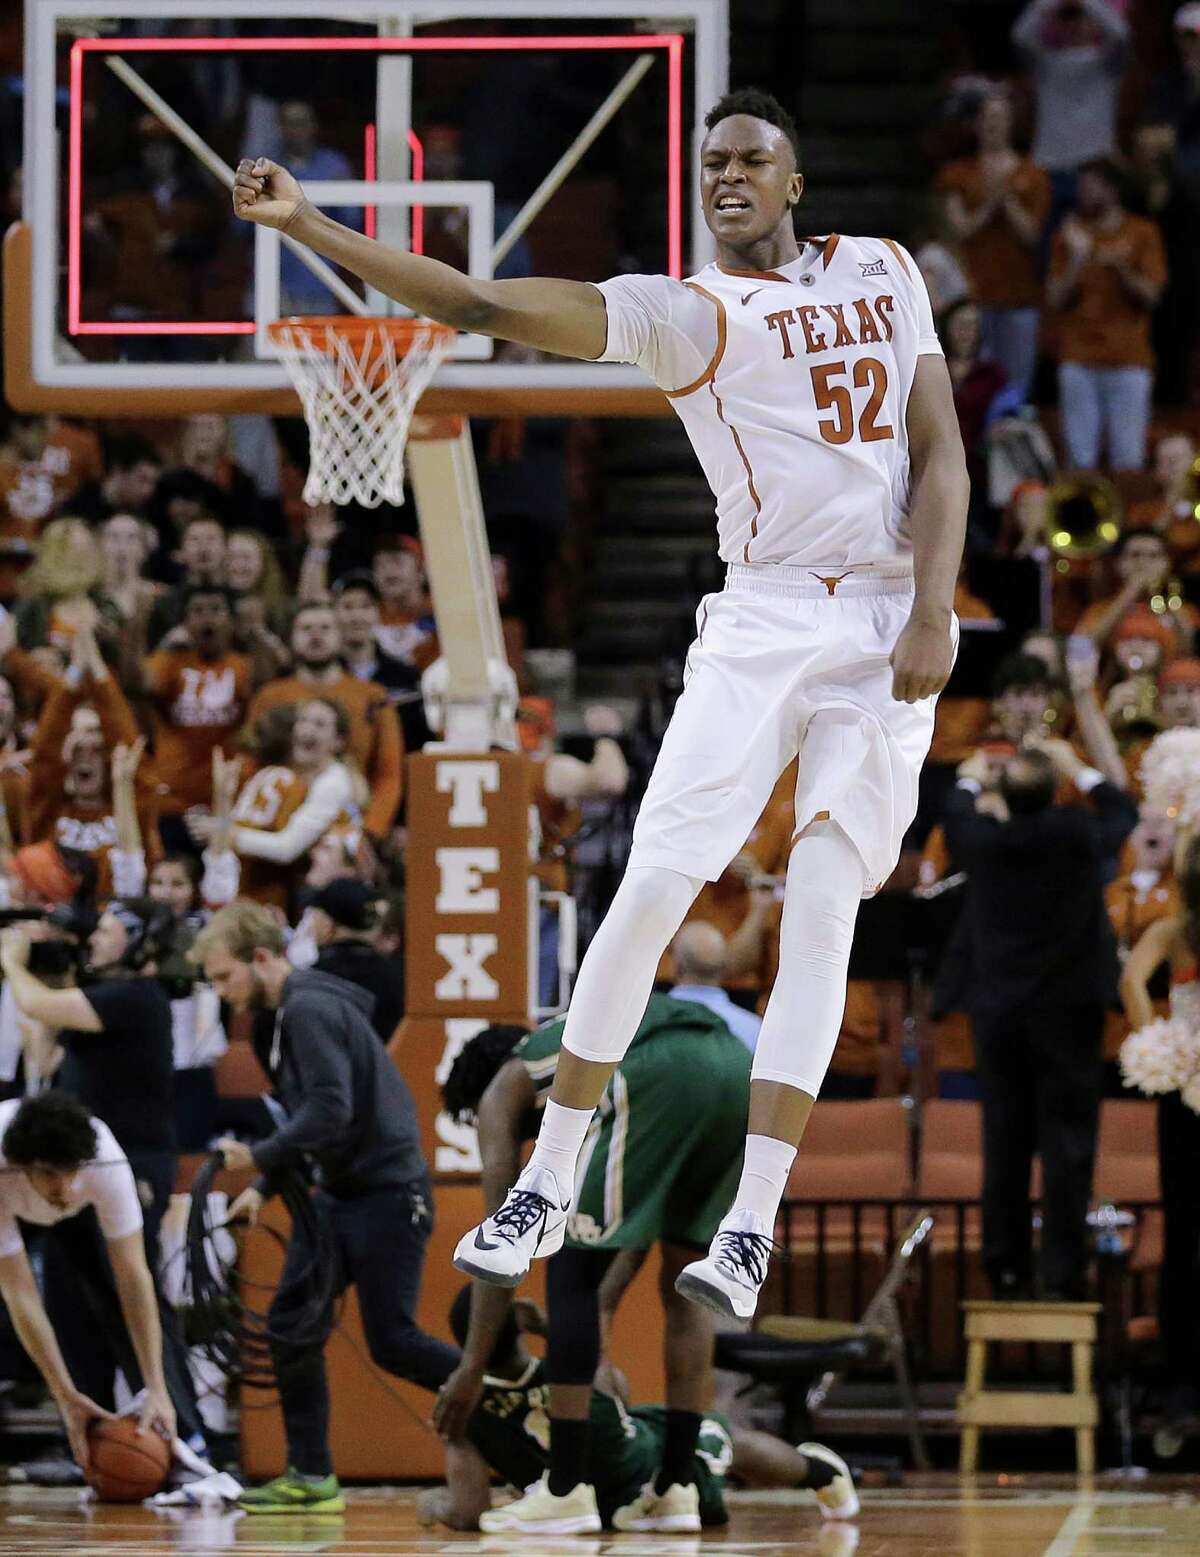 Texas?' Myles Turner celebrates with teammates after he blocked a shot in the final seconds of overtime in an NCAA college basketball game against Baylor, Monday, March 2, 2015, in Austin, Texas. Texas won 61-59.(AP Photo/Eric Gay)